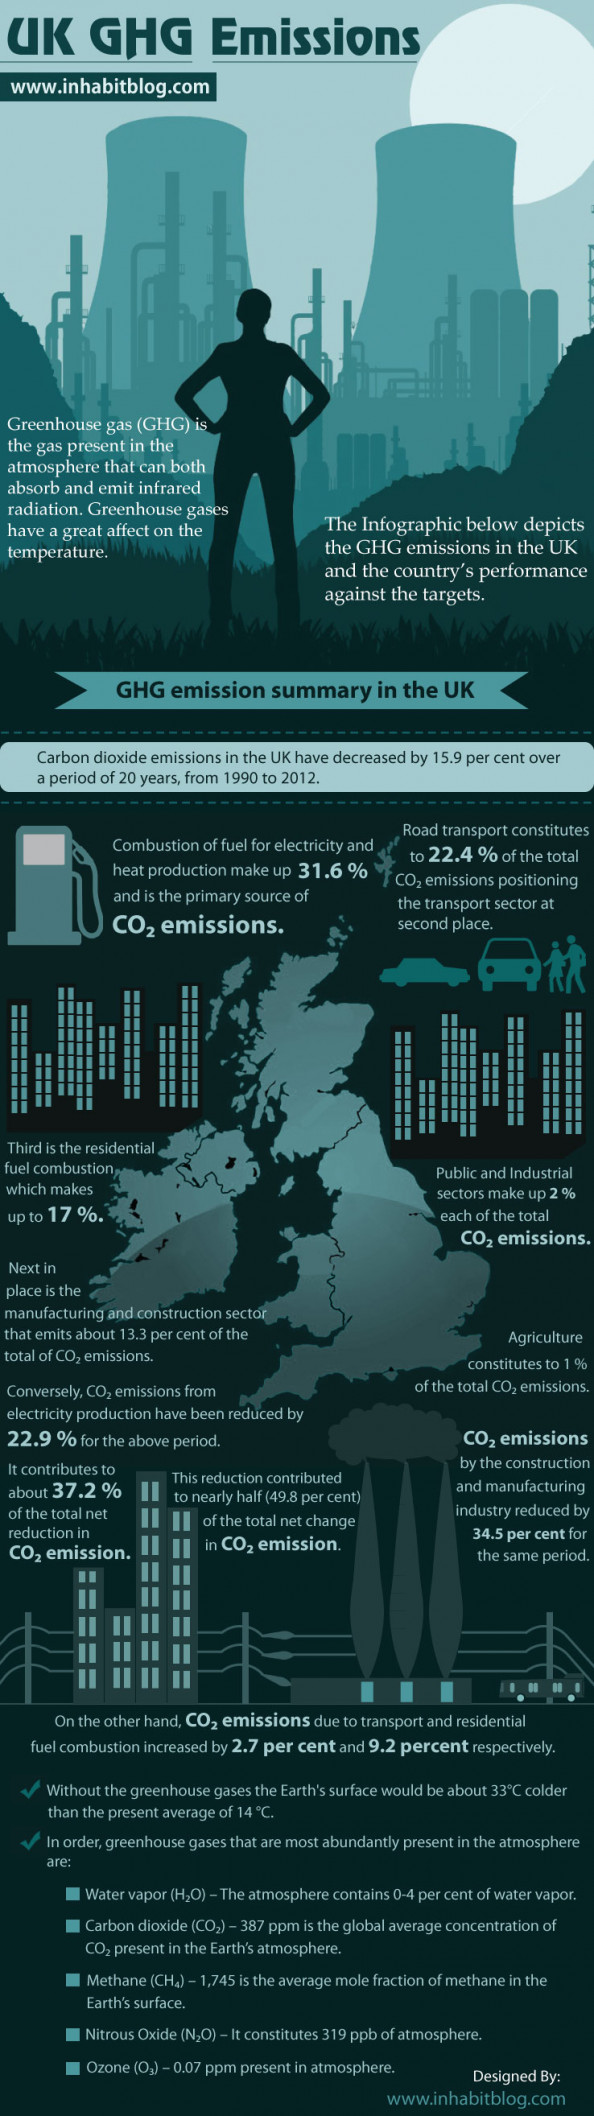 UK GHG Emissions Infographic